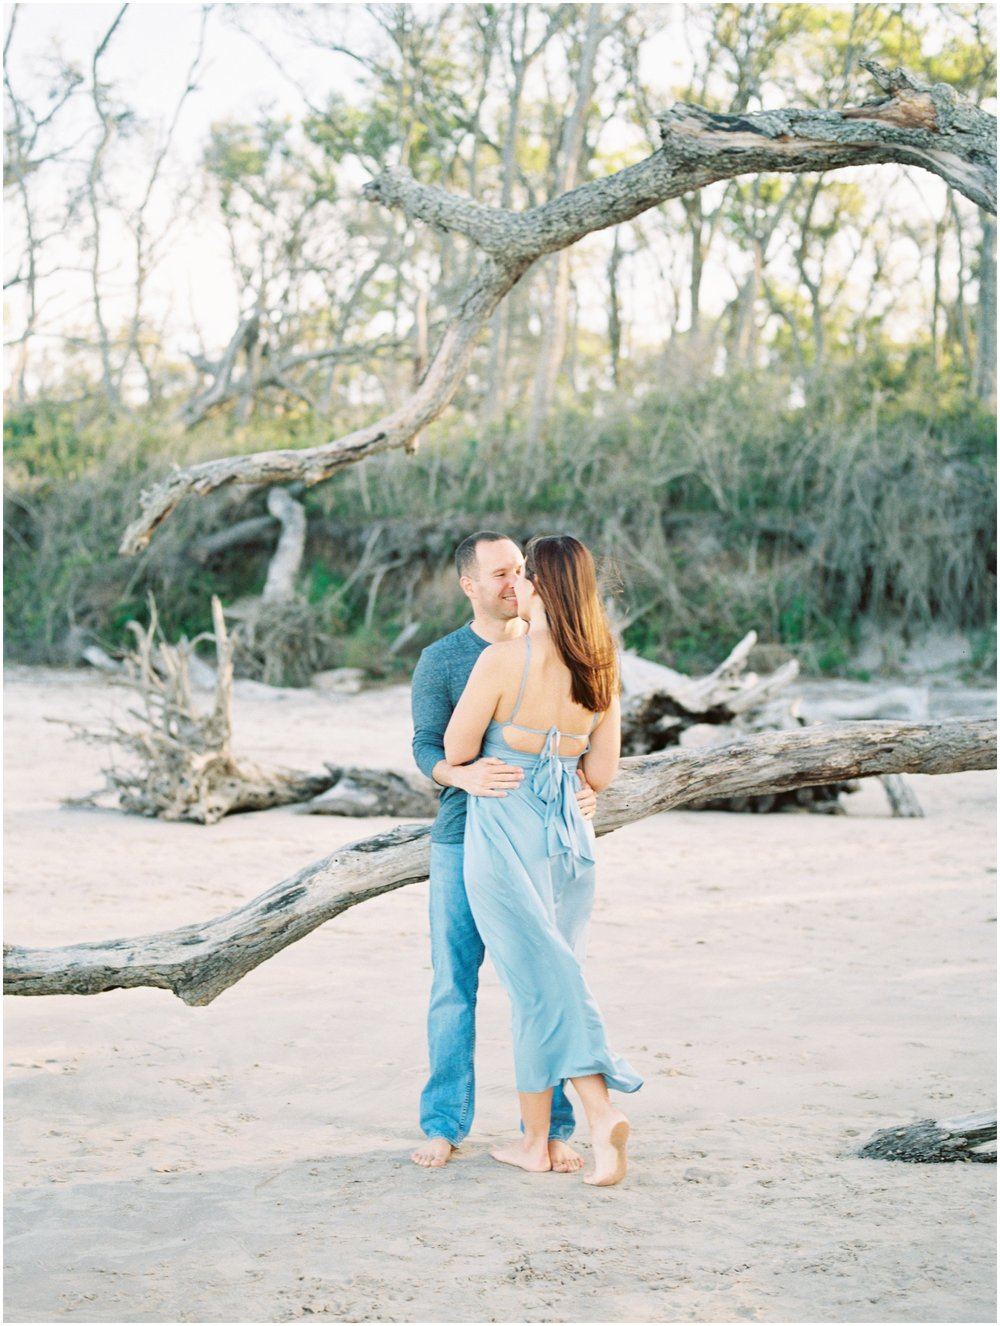 Lisa Silva Photography -Engagement Session at Big Talbot Island- Jacksonville and North East Florida Fine Art Film Photographer_0034.jpg